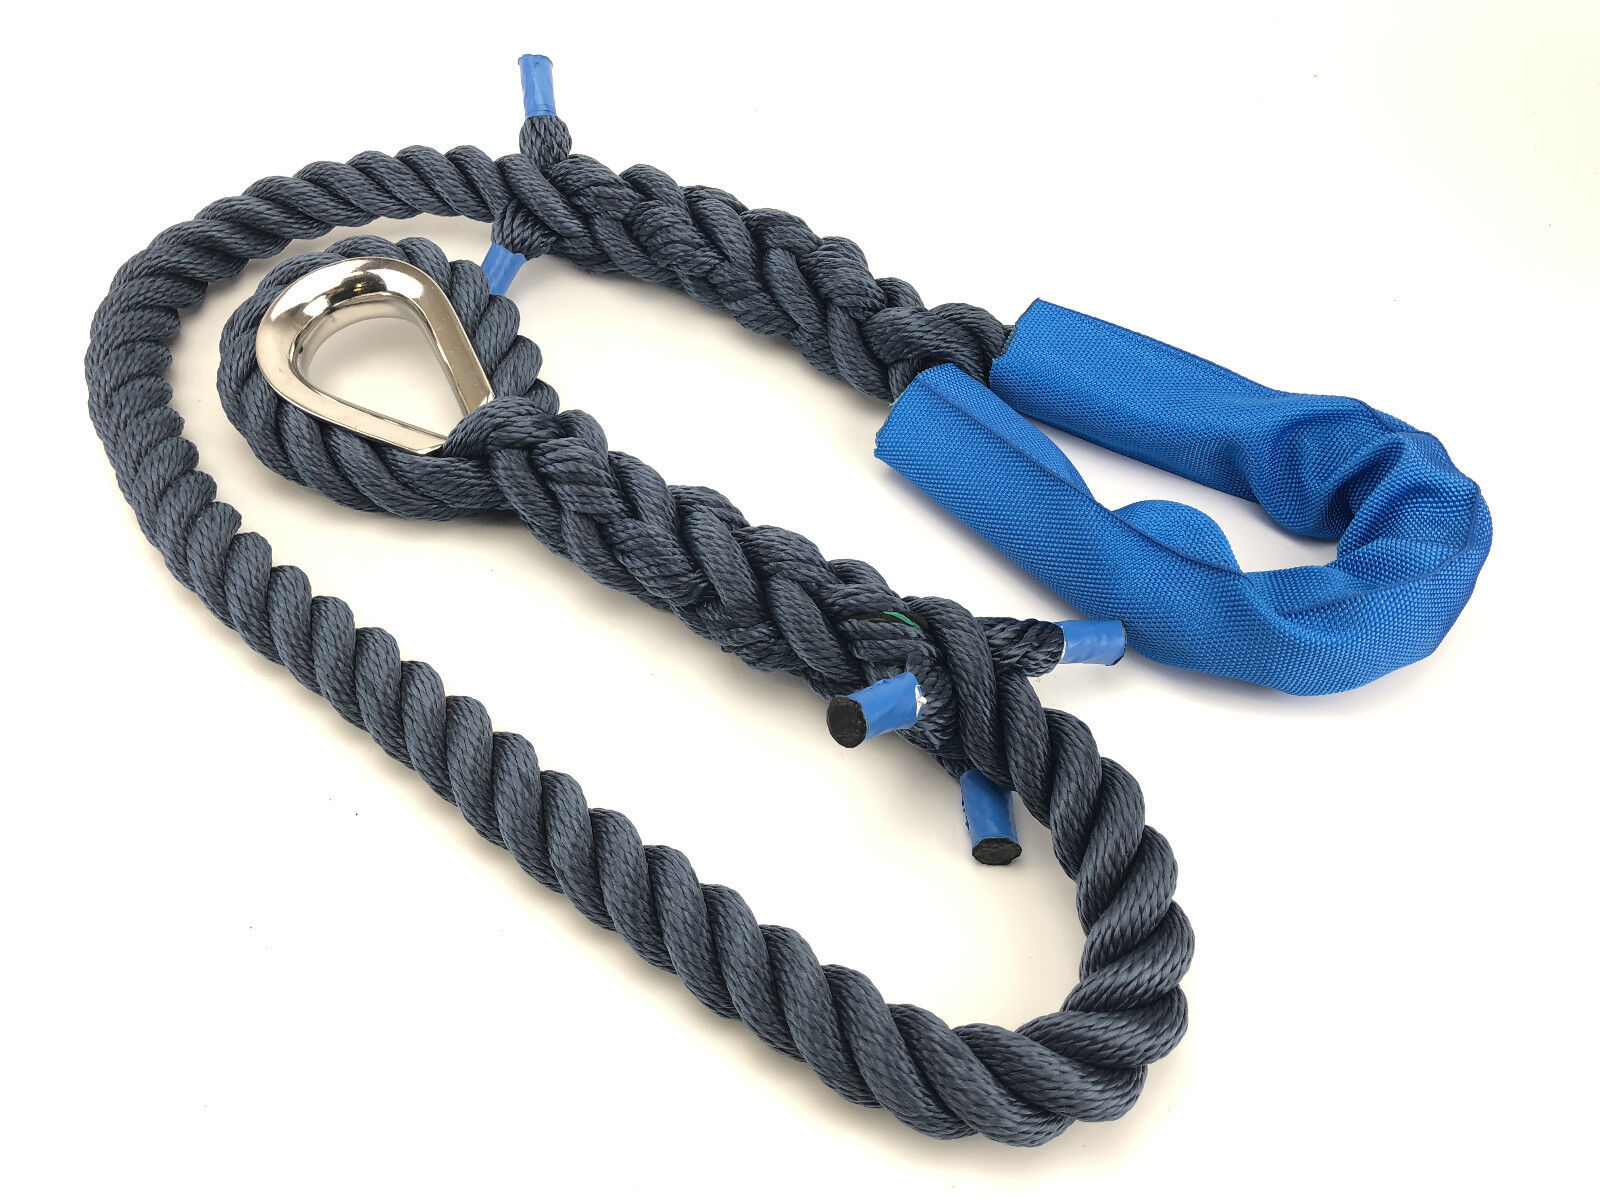 16mm Navy bluee 3 Strand Floating Softline Mooring Rope Strop   Warp x 6 Metres